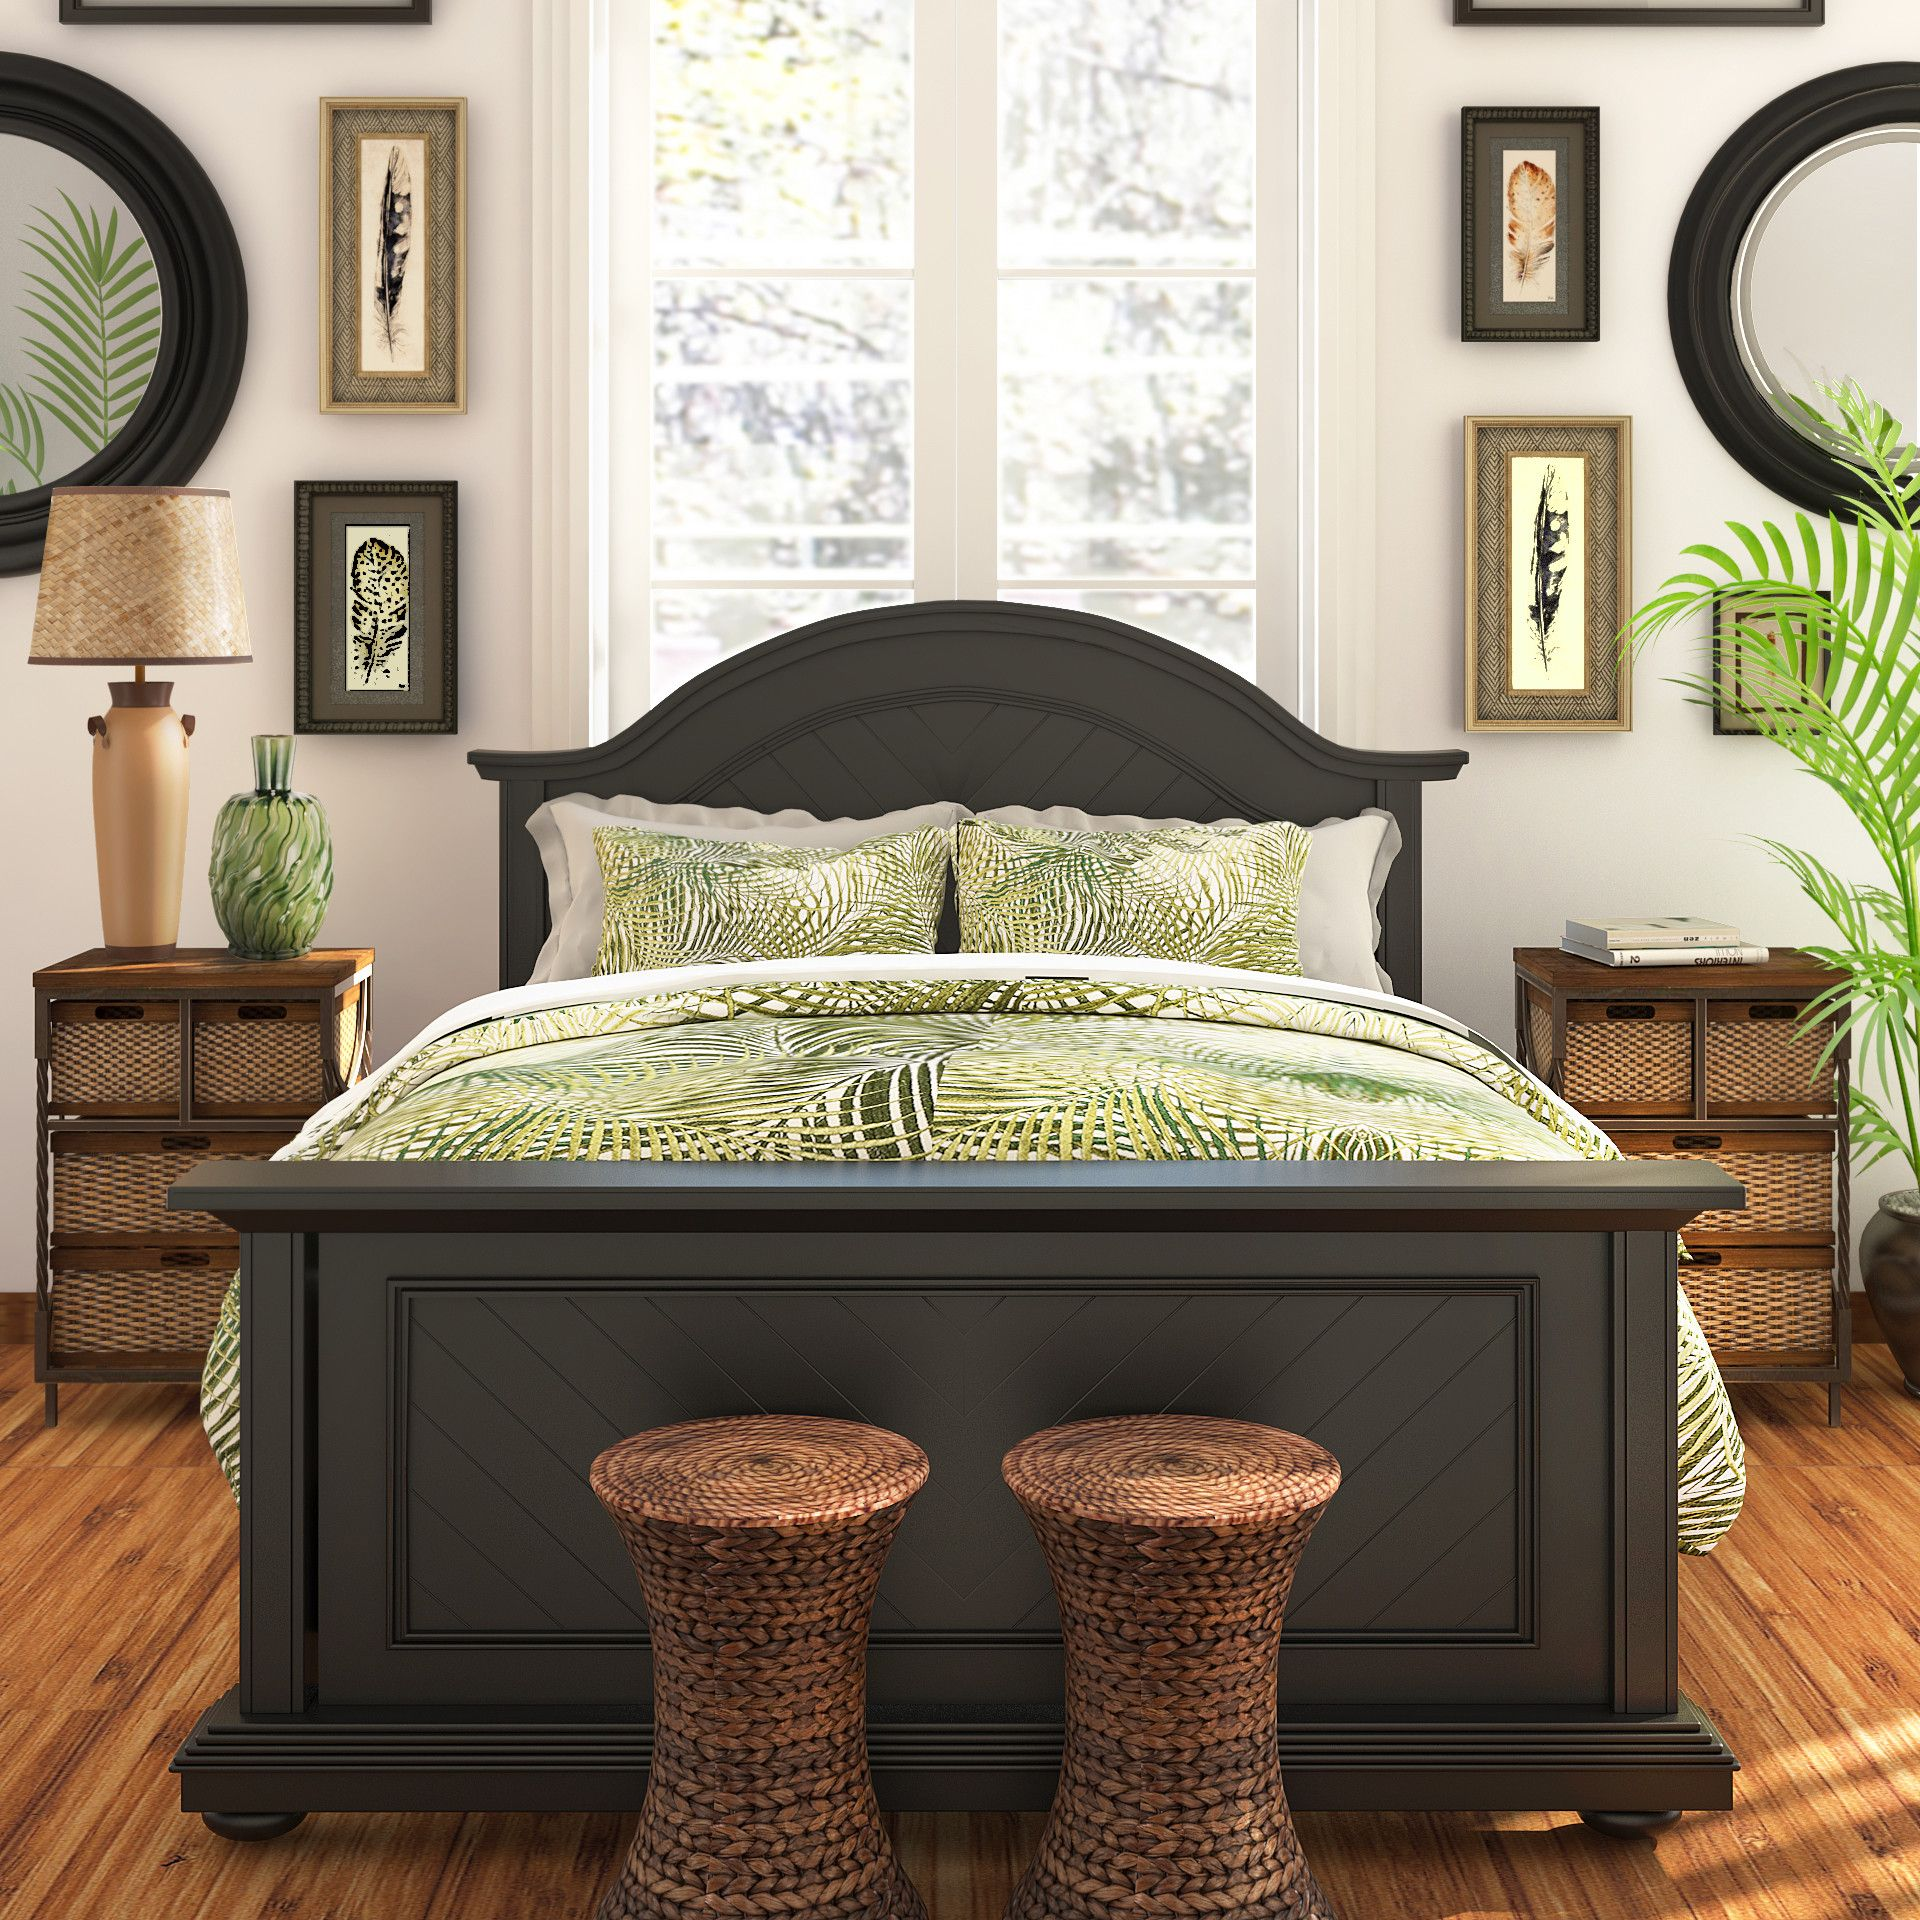 Shop Wayfair For Bedroom Furniture Sale To Match Every Style And Budget Enjoy Bedroom Furniture For Sale Home Bed